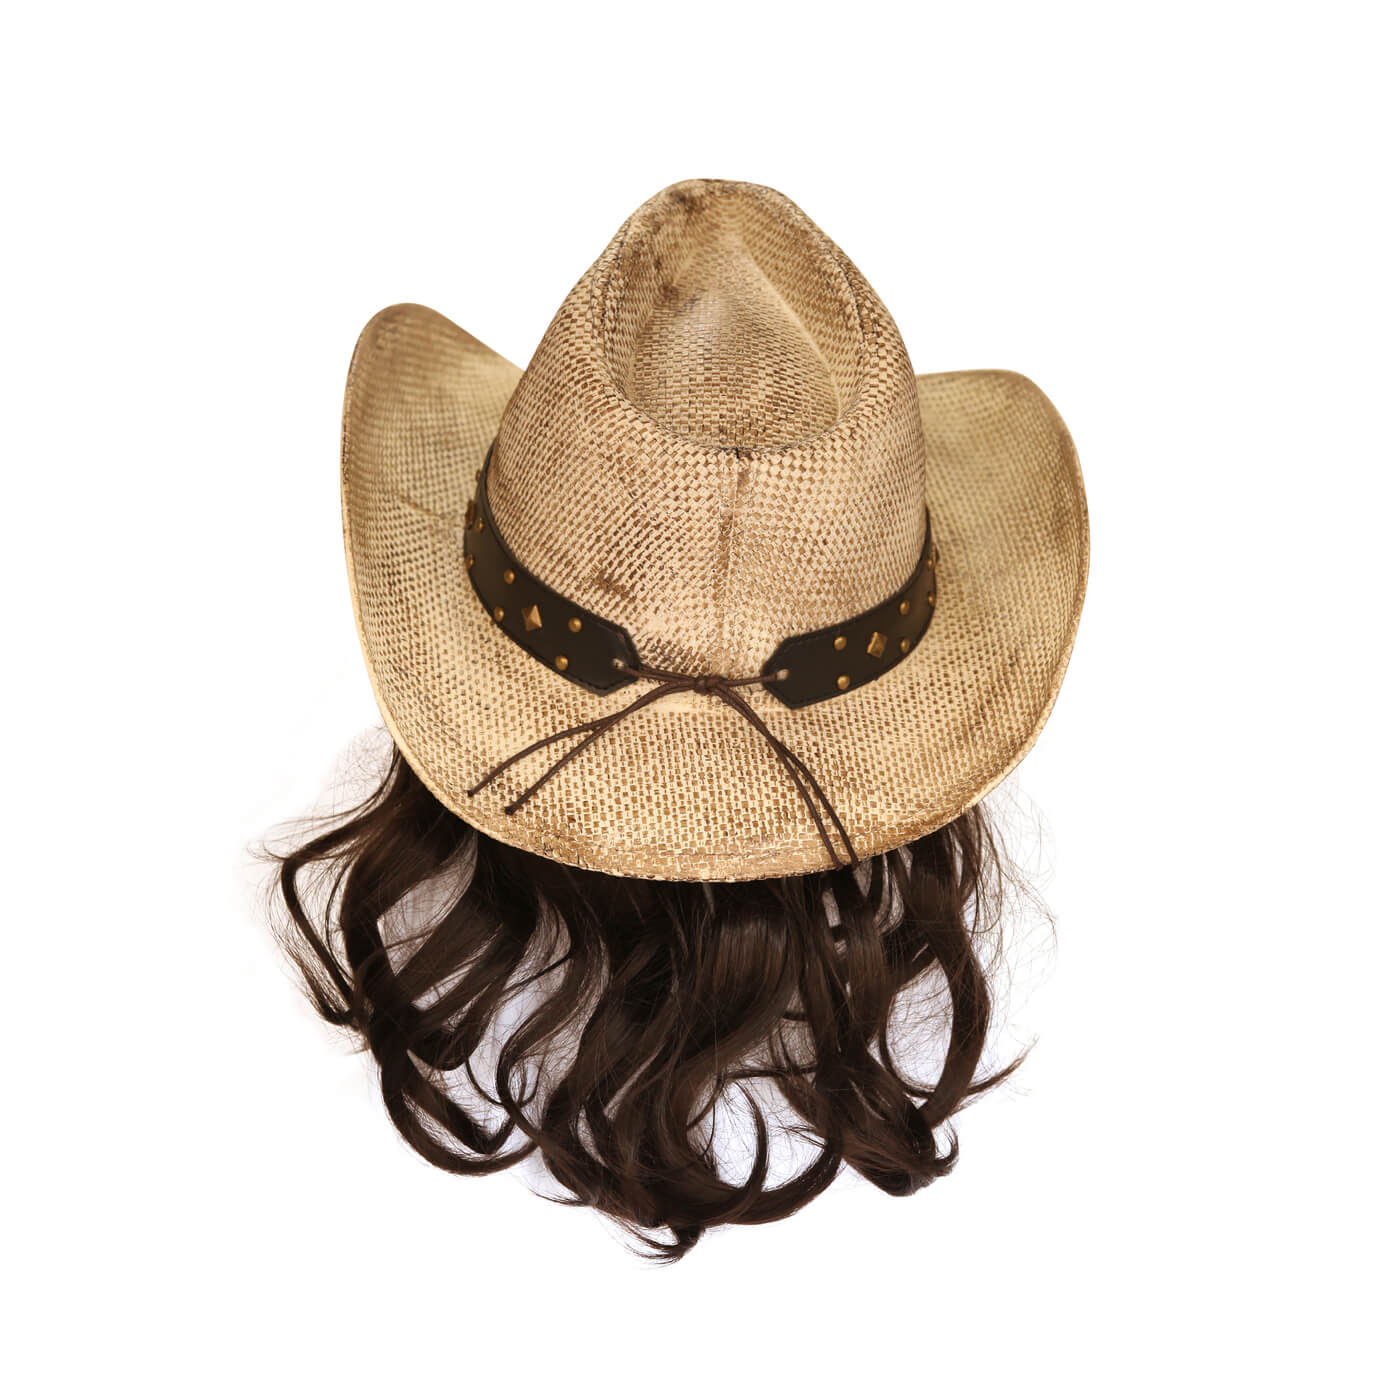 Redneck Legends Fake Snake Skin Cowboy Hat